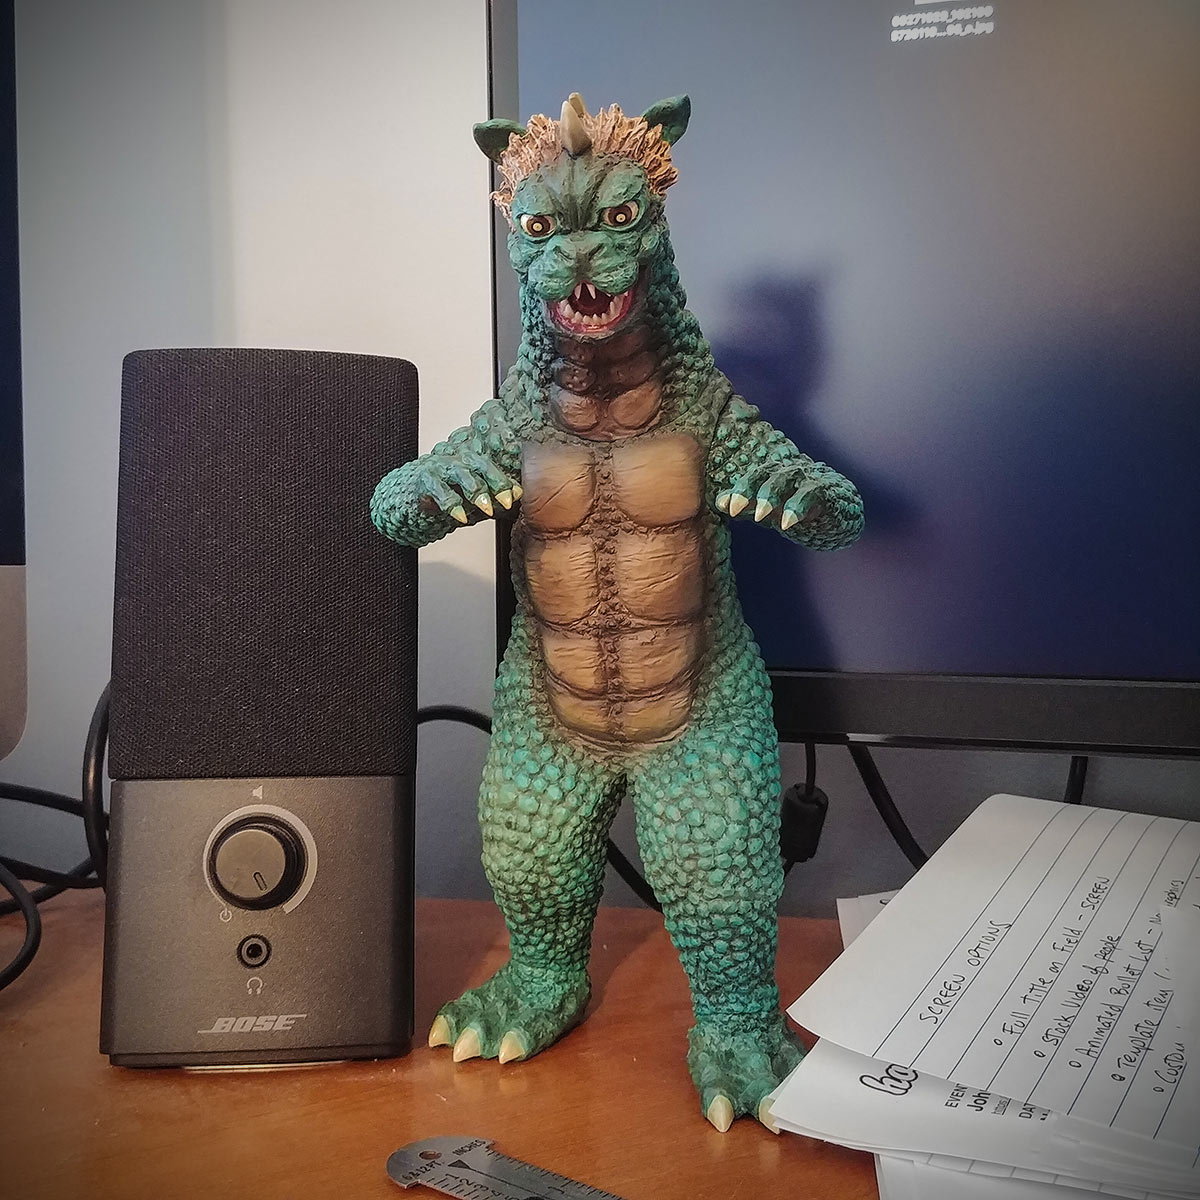 X-Plus Large Monster Series Gabara vinyl figure on my desk.